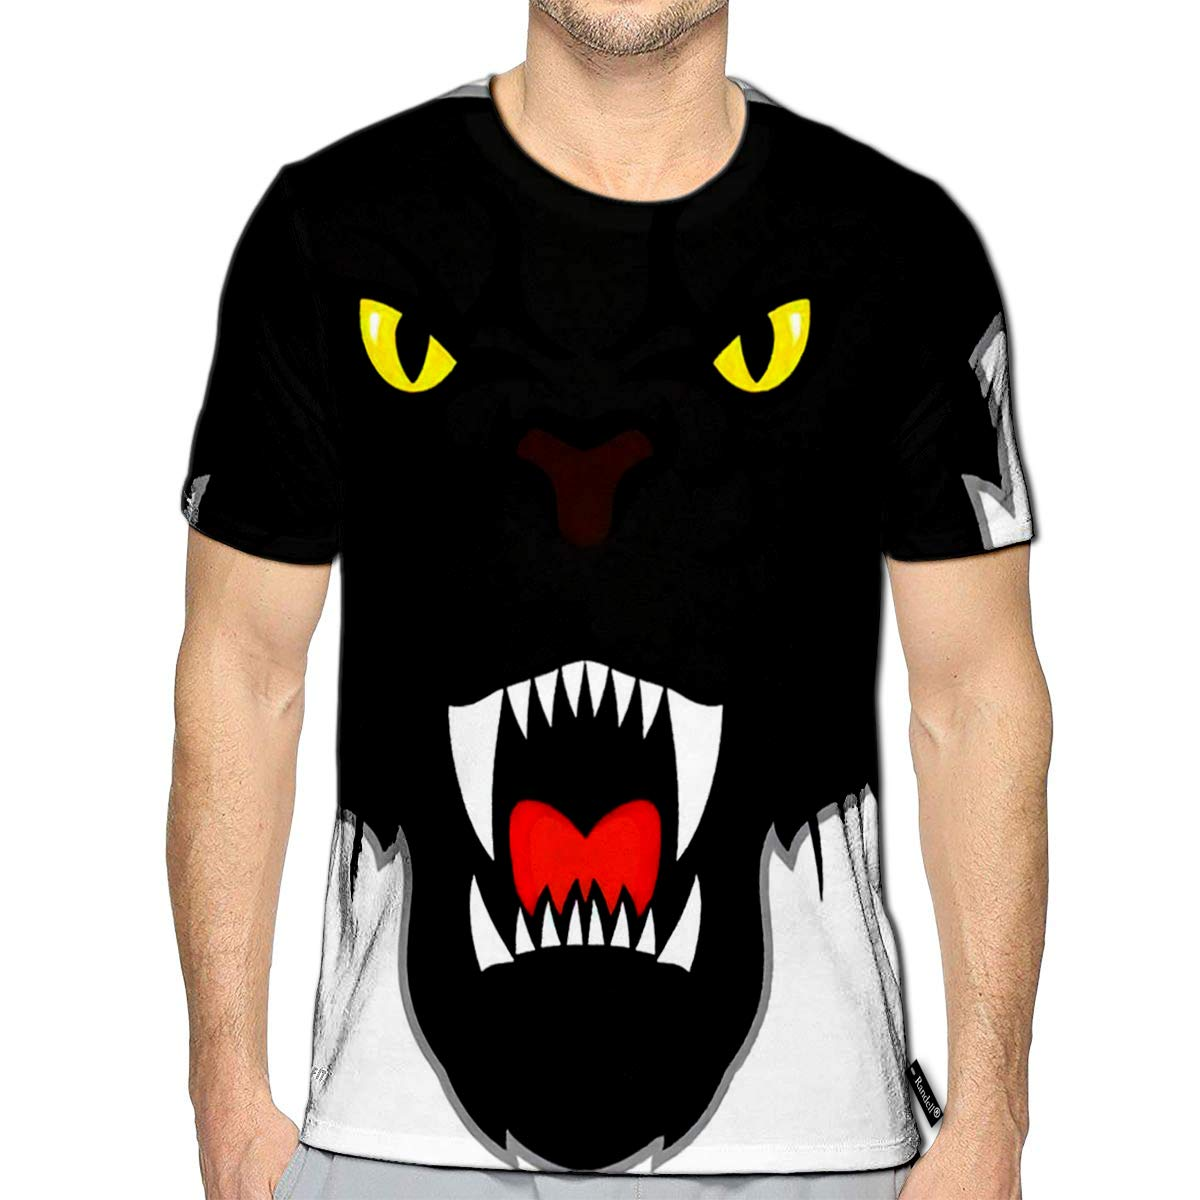 3D Printed T-Shirts Black Panther Head Short Sleeve Tops Tees